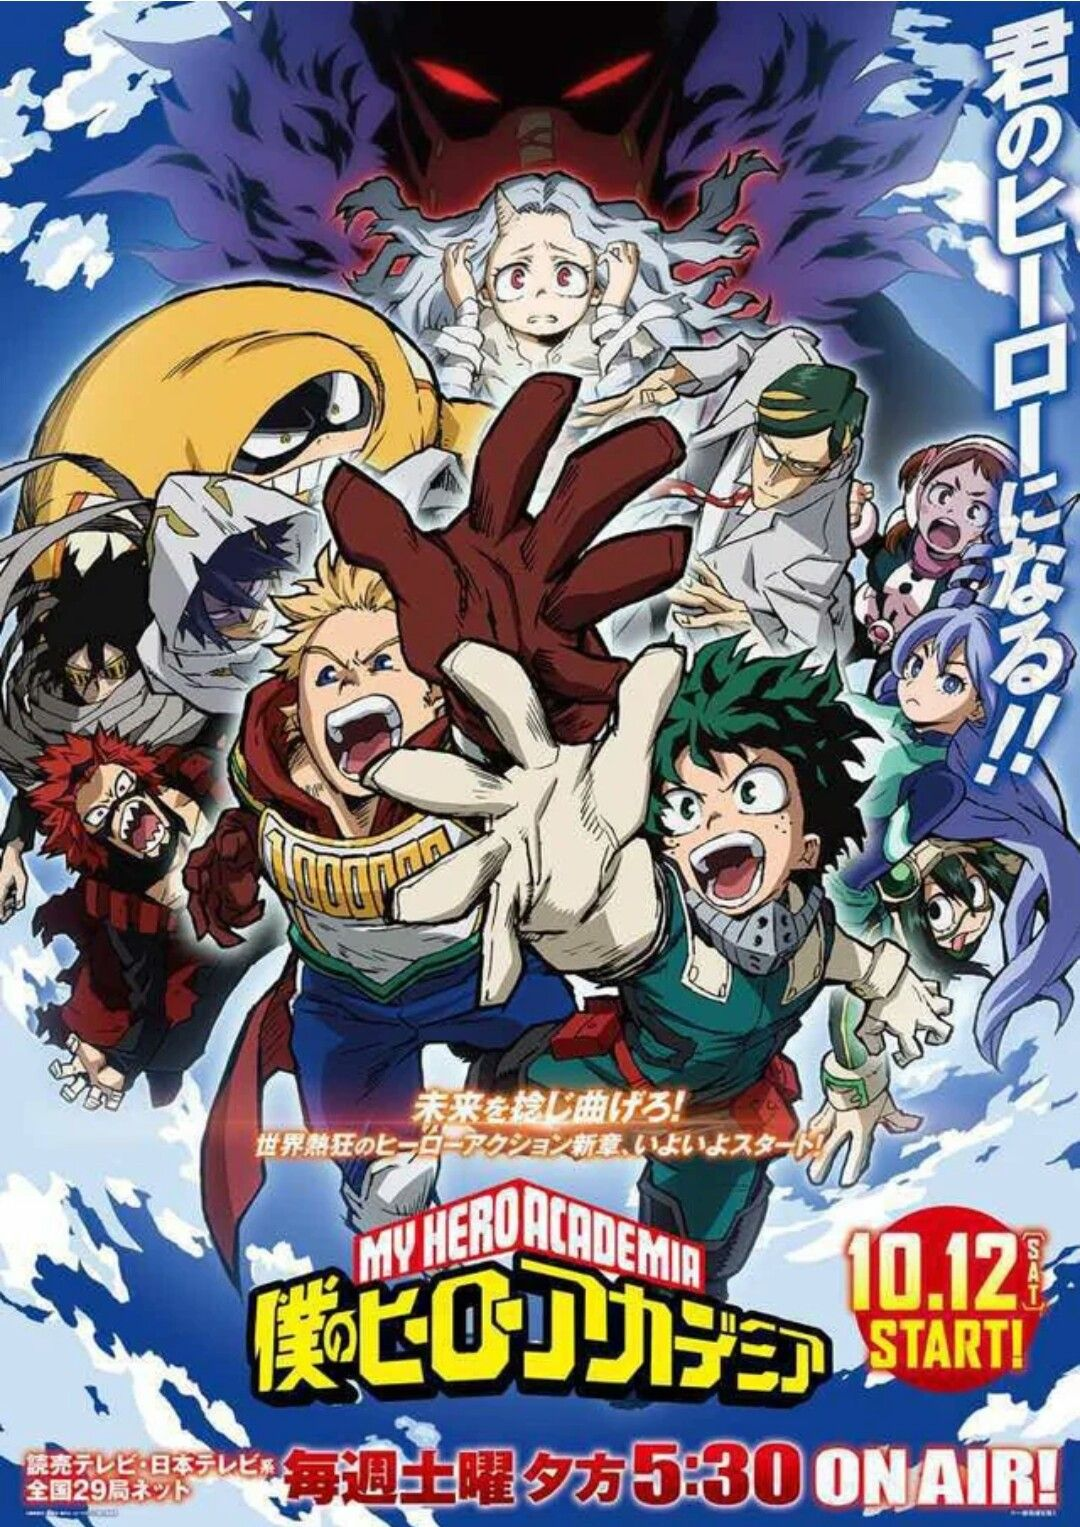 Pin by Erasermic4ever on My hero academia My hero academia manga 1080x1527